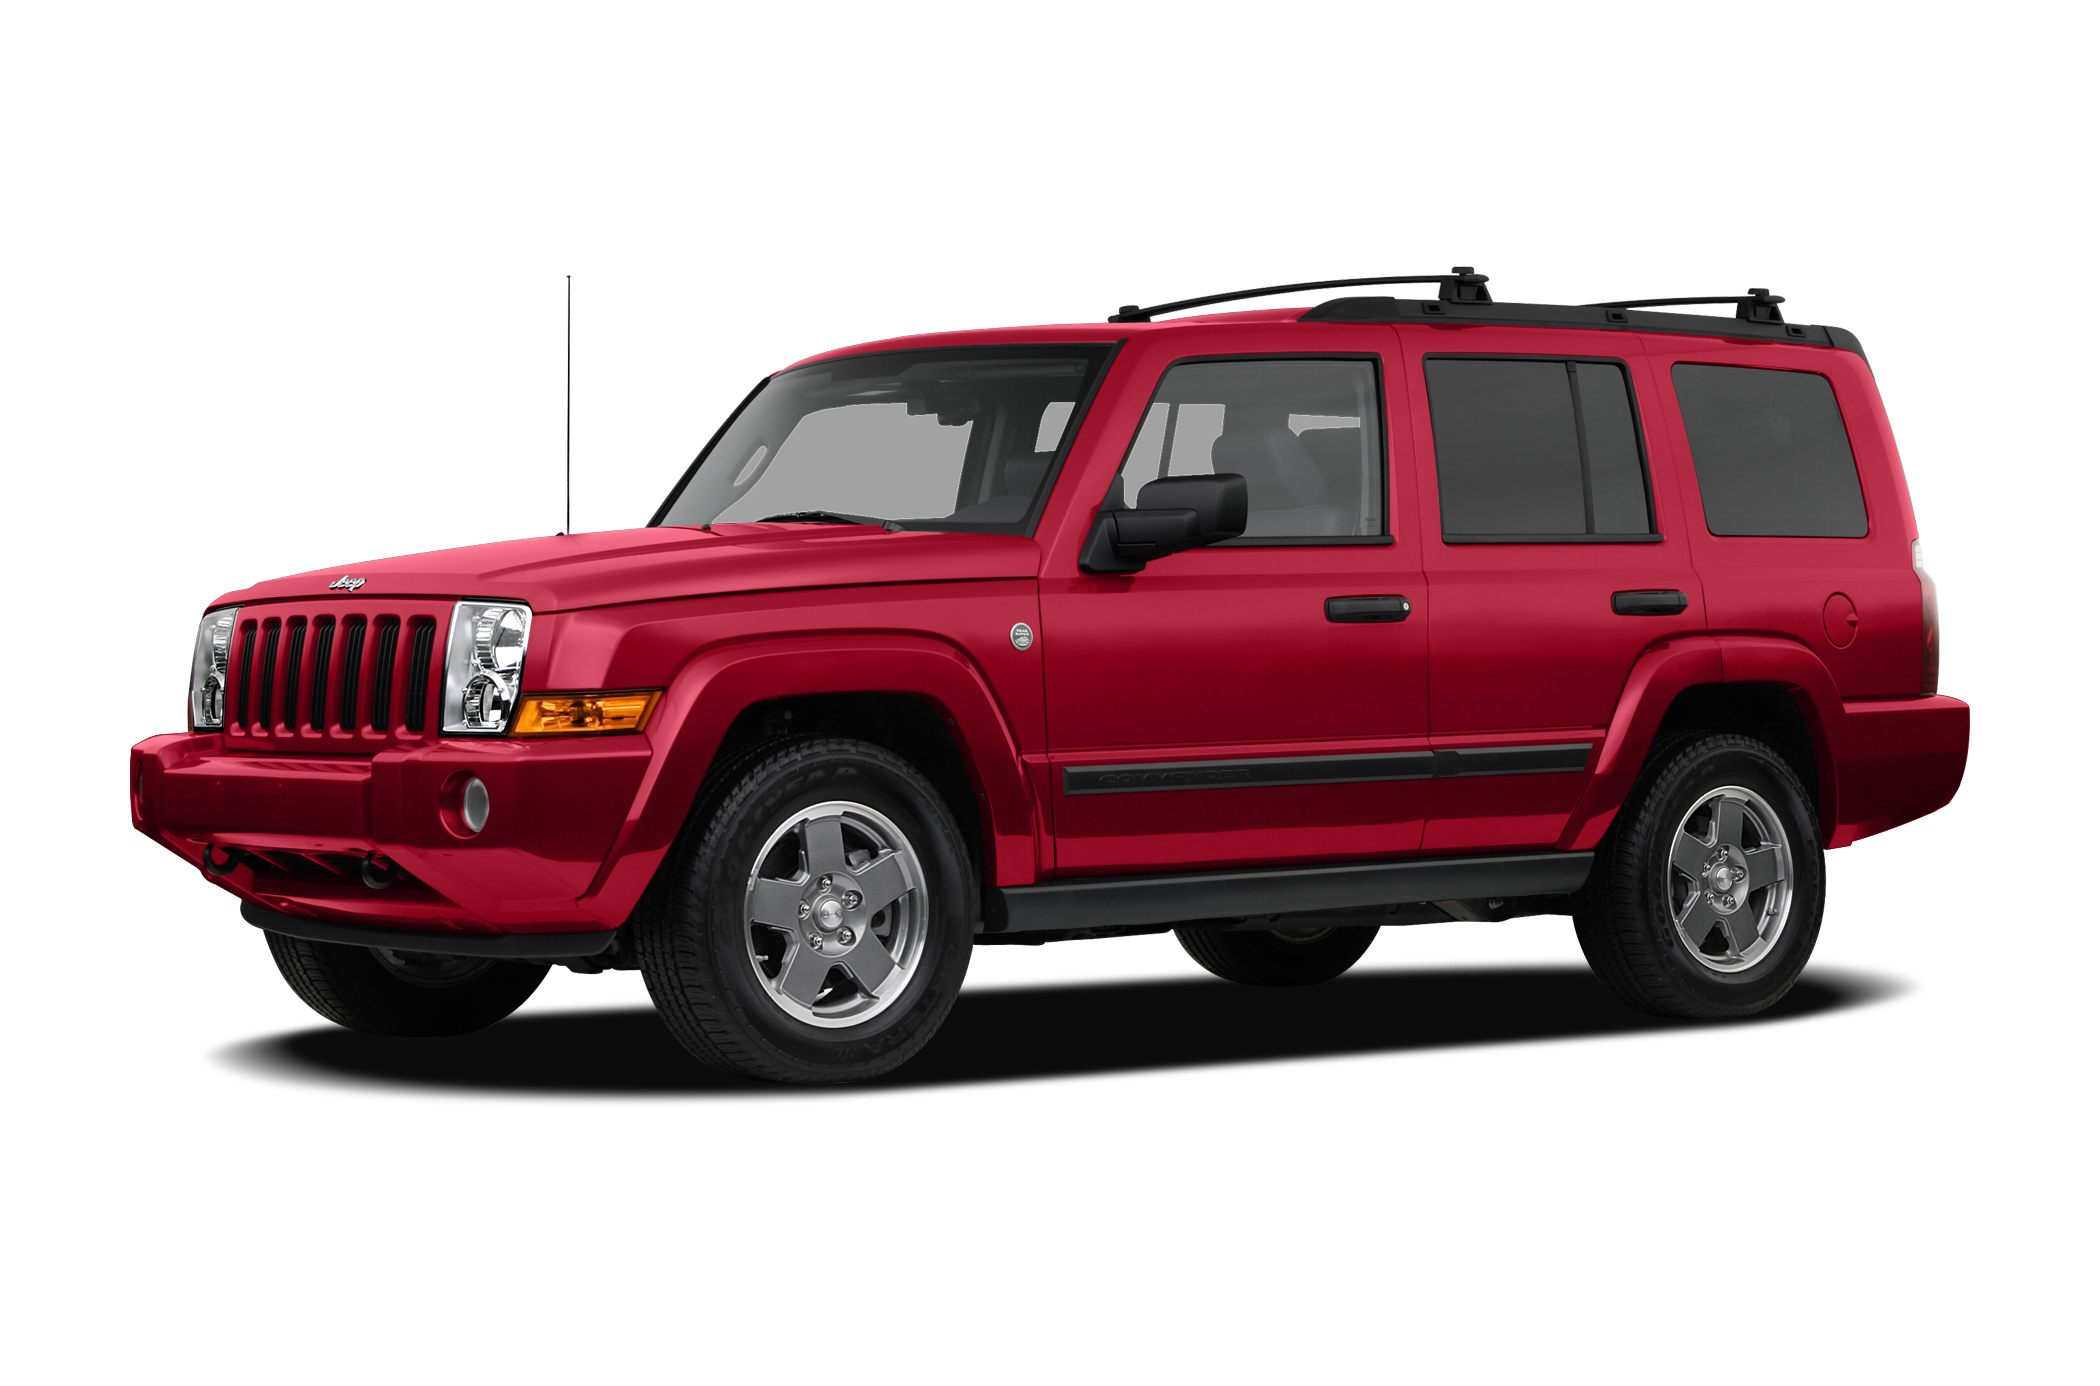 2006 Jeep Commander Limited SUV for sale in Lexington for $0 with 112,585 miles